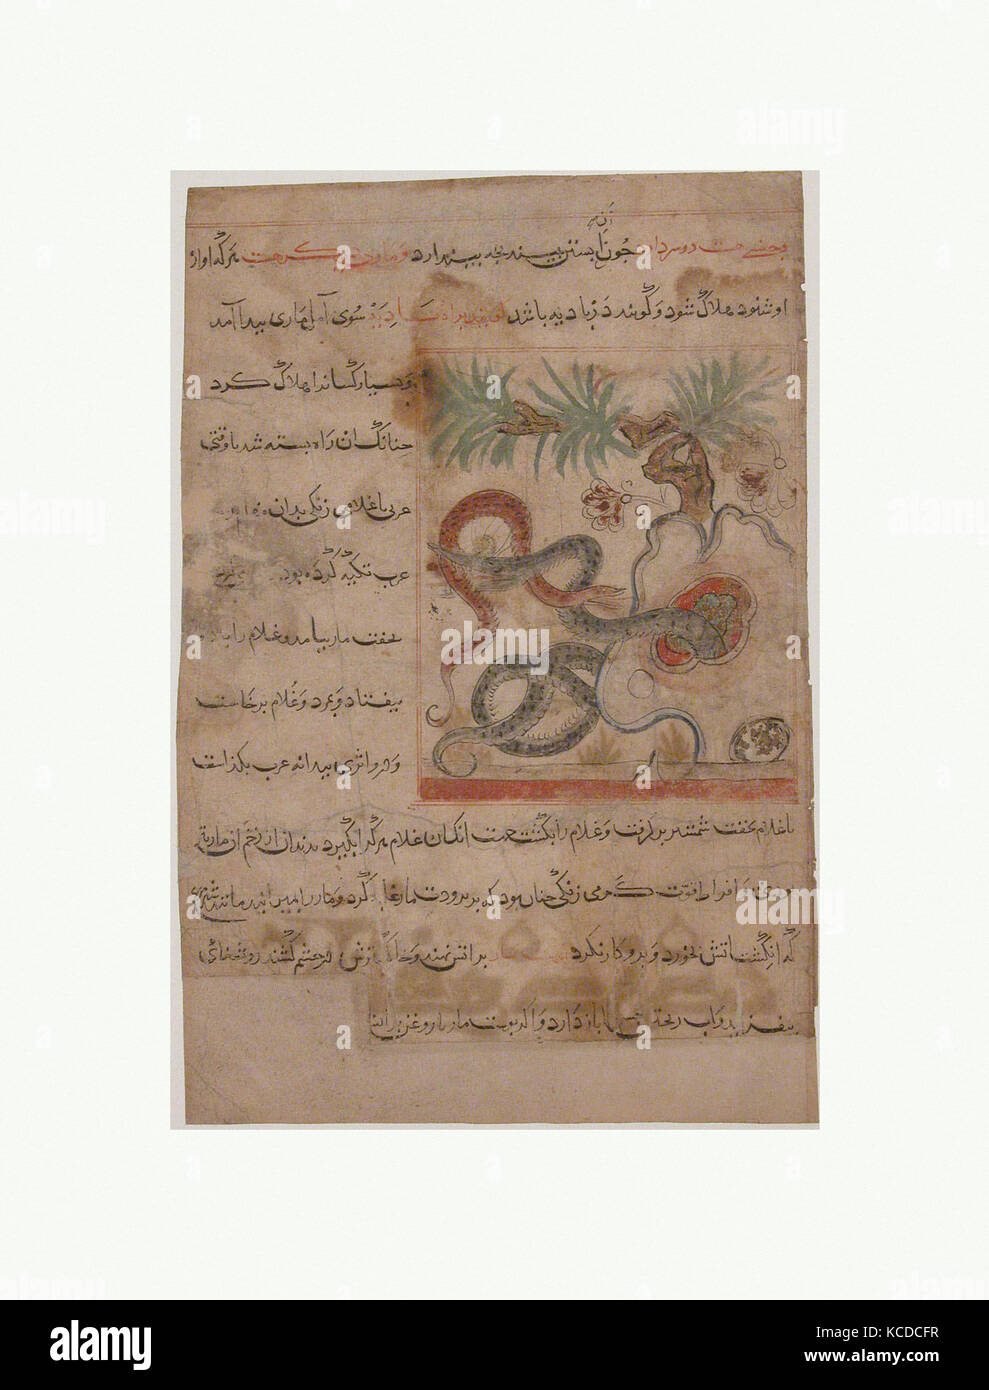 'Pair of Serpents', Folio from a Manafi' al-Hayawan (On the Usefulness of Animals) of Ibn Bakhtishu', - Stock Image